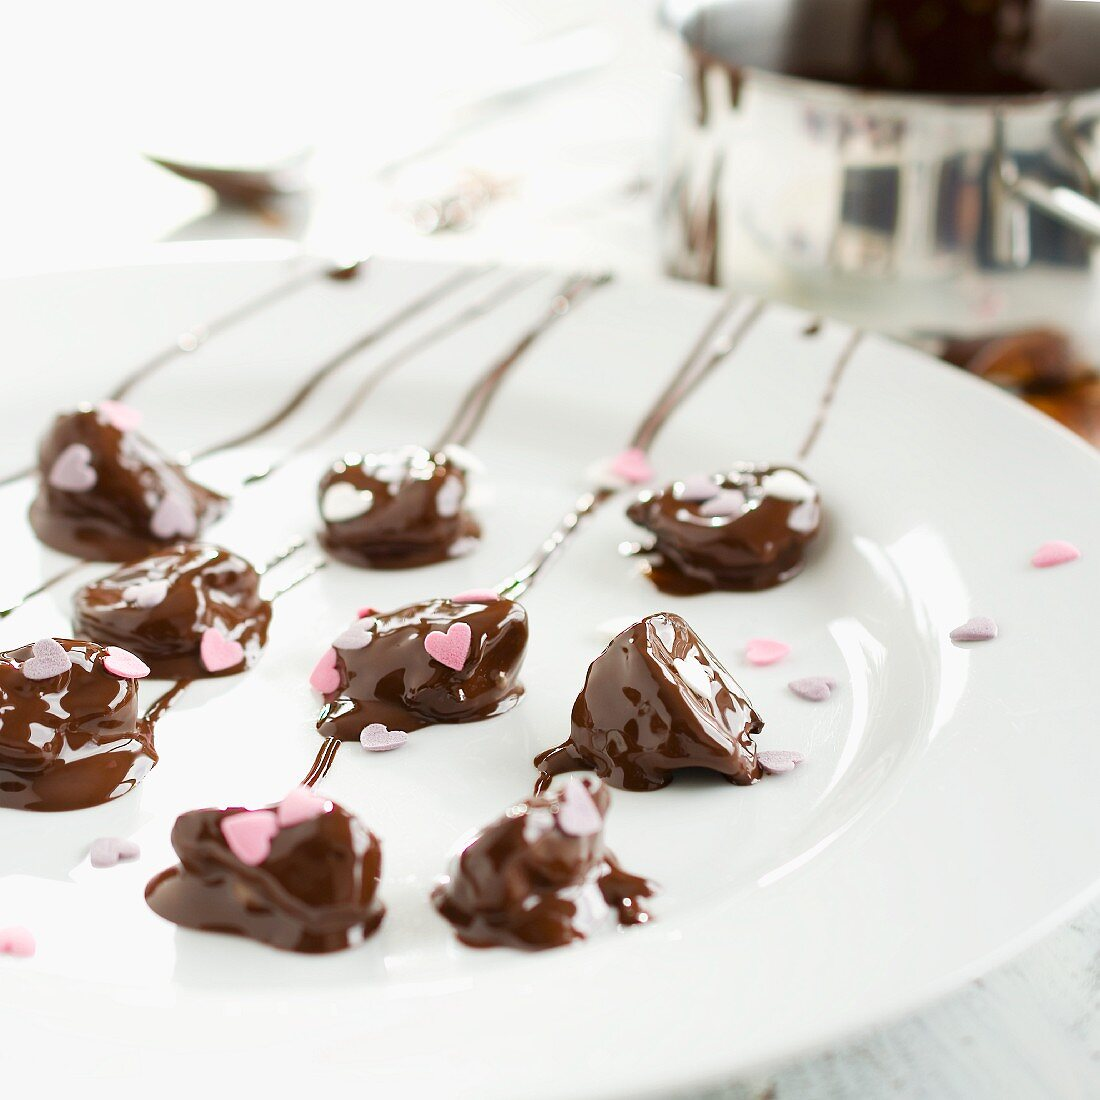 Chocolate-covered plums decorated with sugar hearts being made